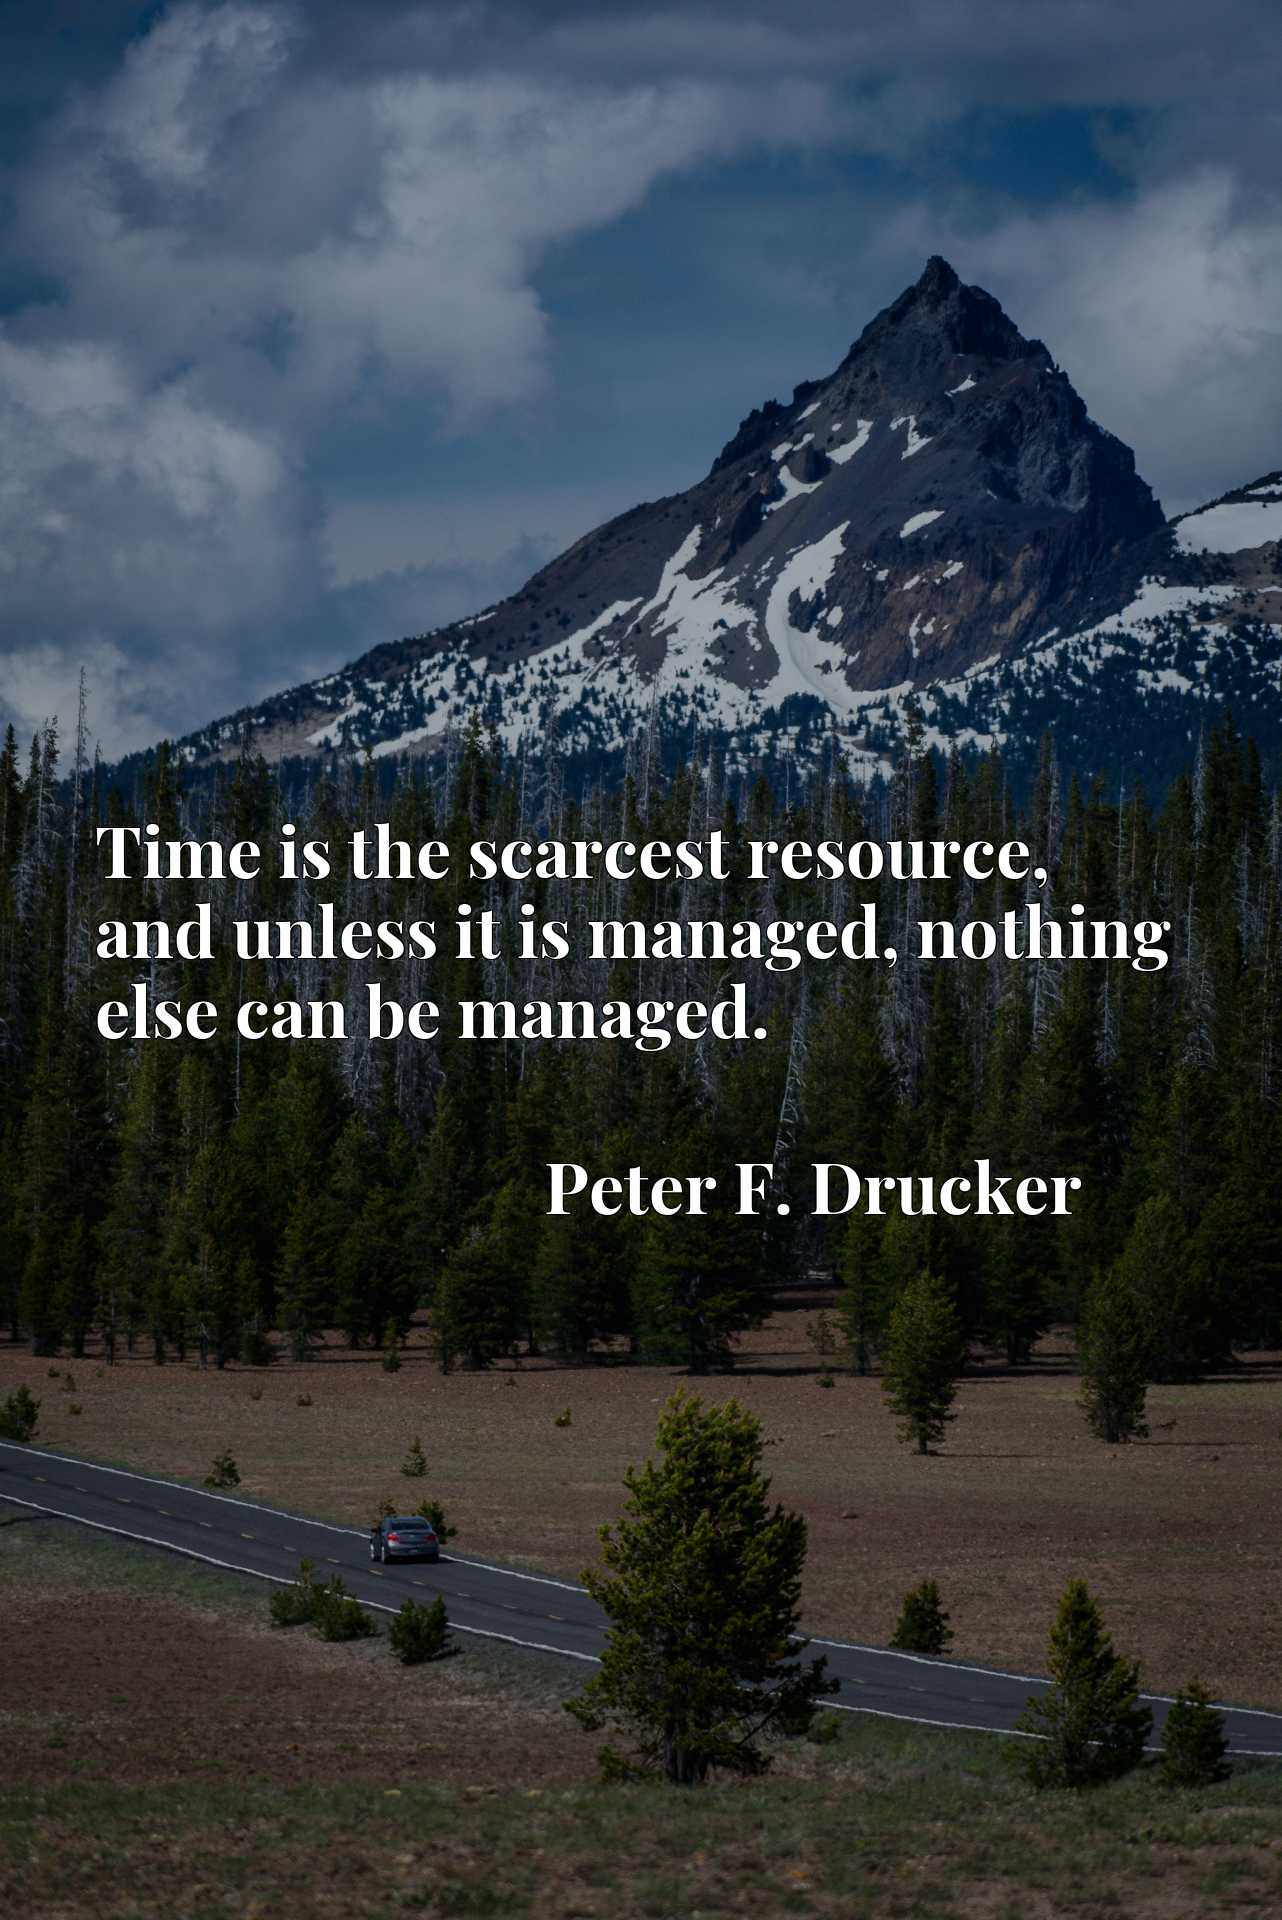 Time is the scarcest resource, and unless it is managed, nothing else can be managed.